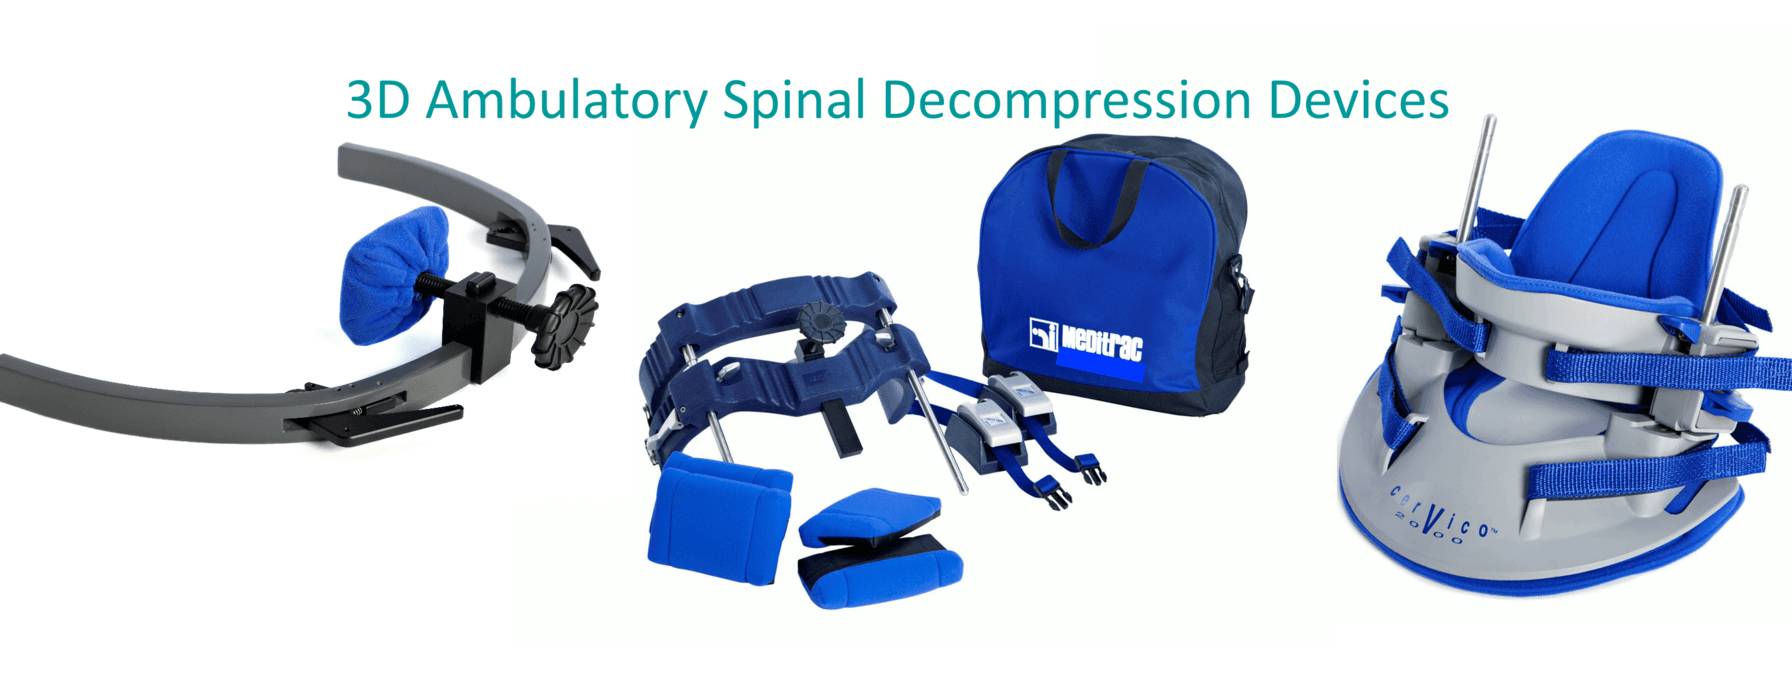 Meditrac 3D Ambulatory Spinal Decompression Devices, including the Vertetrac, Cervico 2000 & DBS Scoliosis Rail Attachment, for neck & lower back pain relief, vertetrac disc bulges